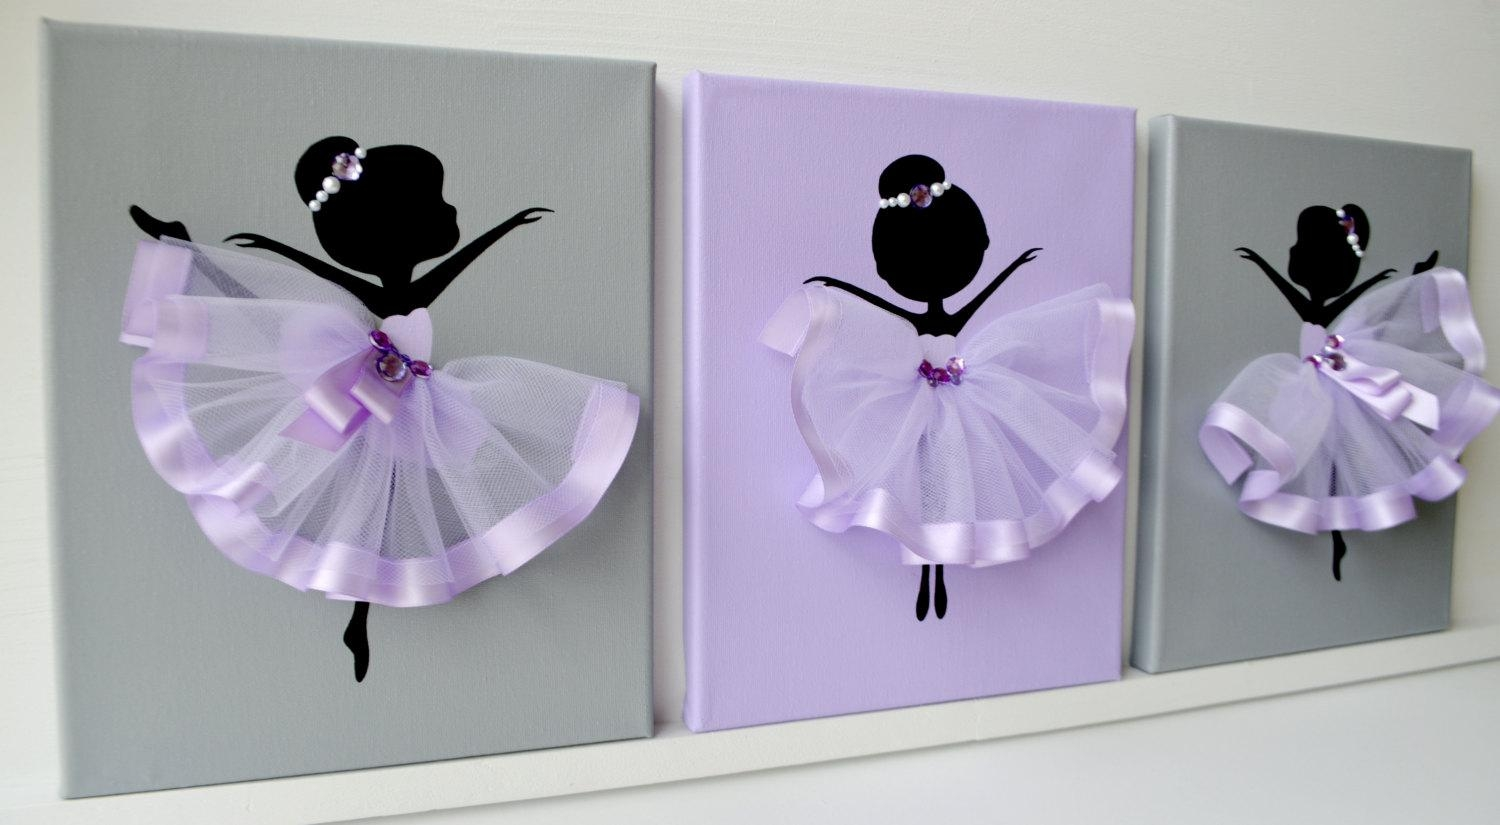 Dancing Ballerinas Wall Decor (Image 7 of 20)